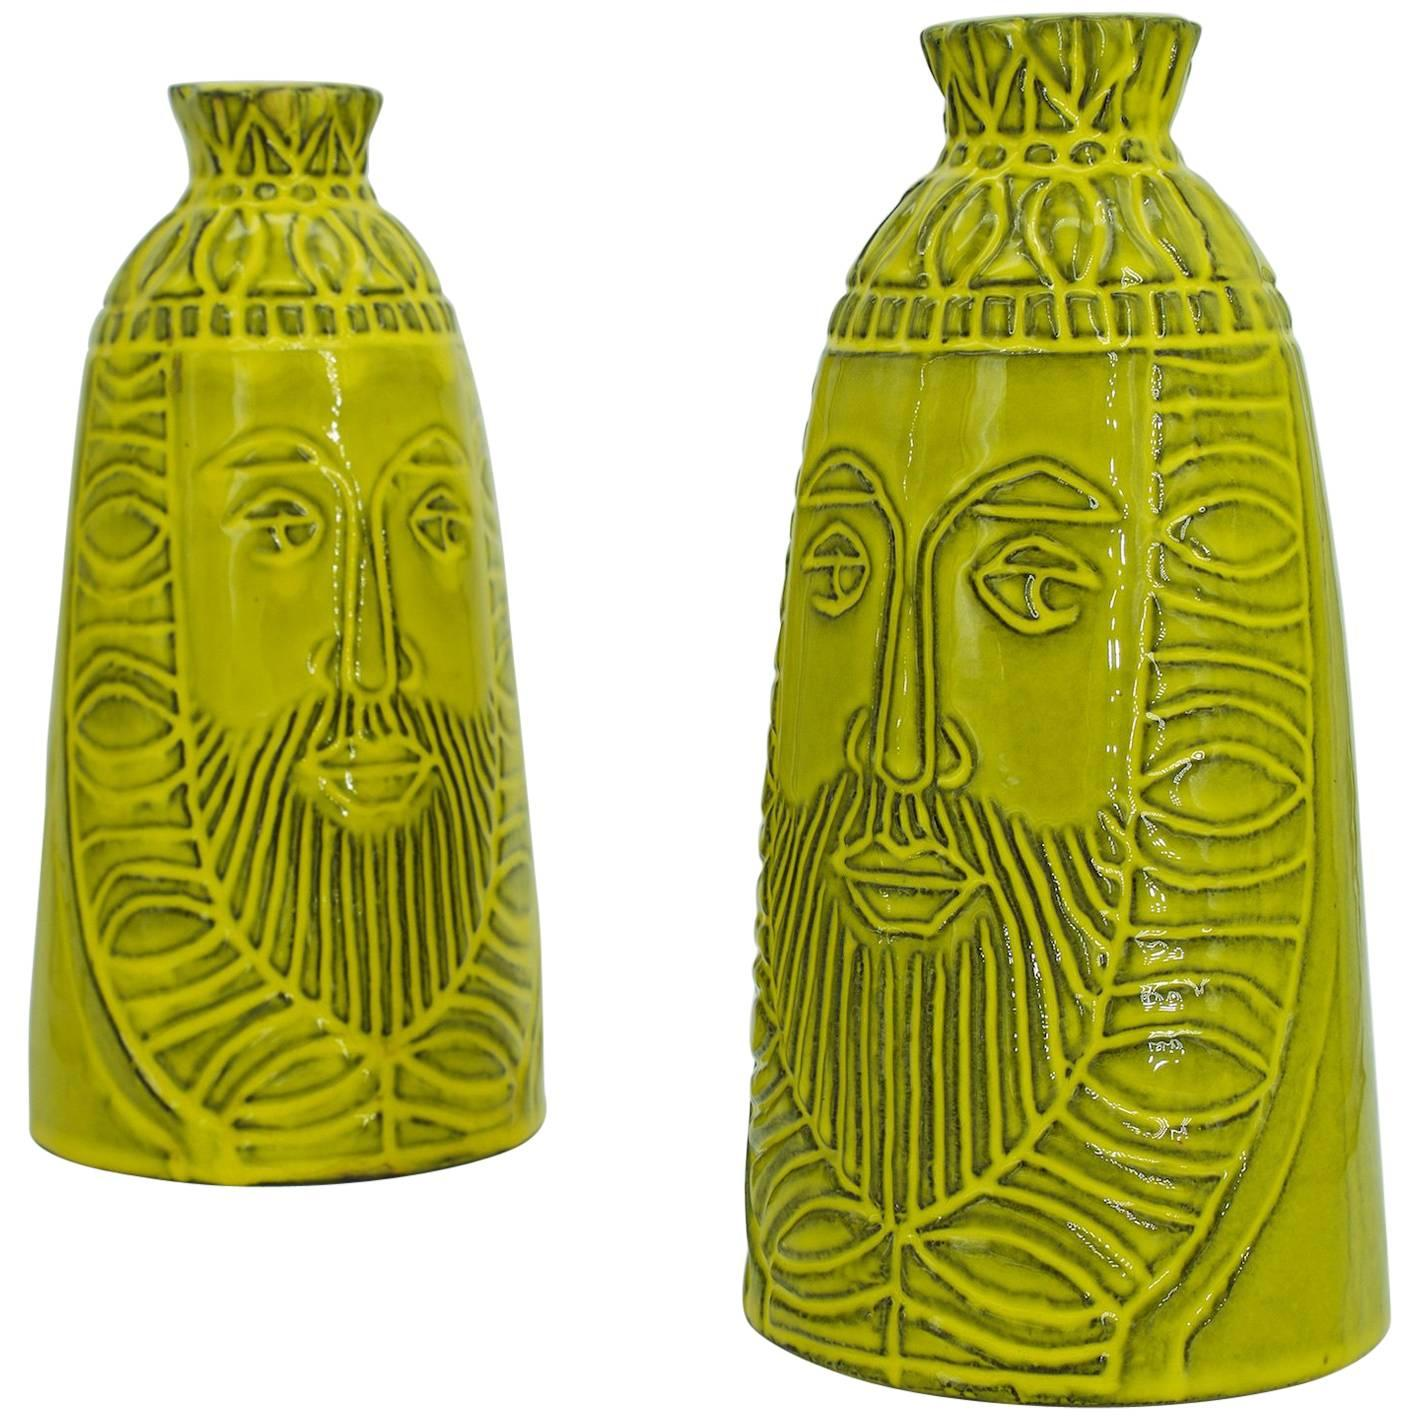 1960s Pair Rare Chess King Decanters by Raul Coronel for Treasure Craft USA